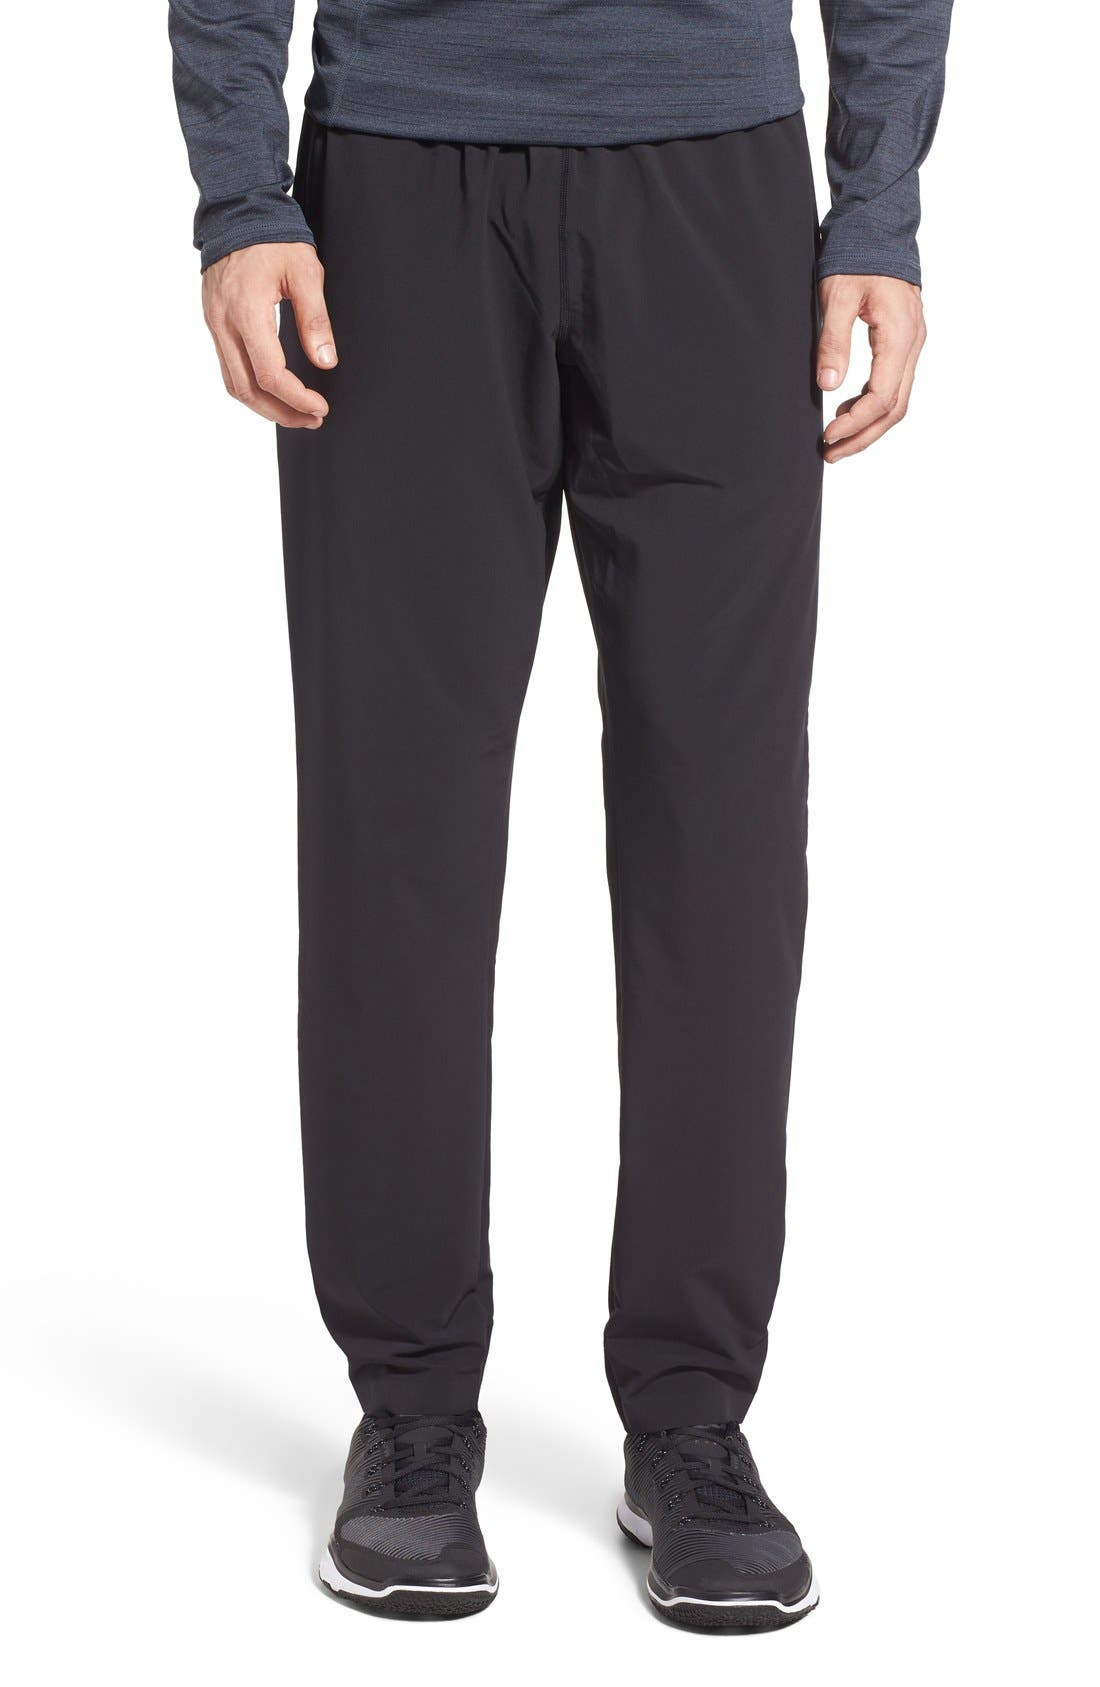 Main Image - Zella 'Graphite' Tapered Athletic Pants